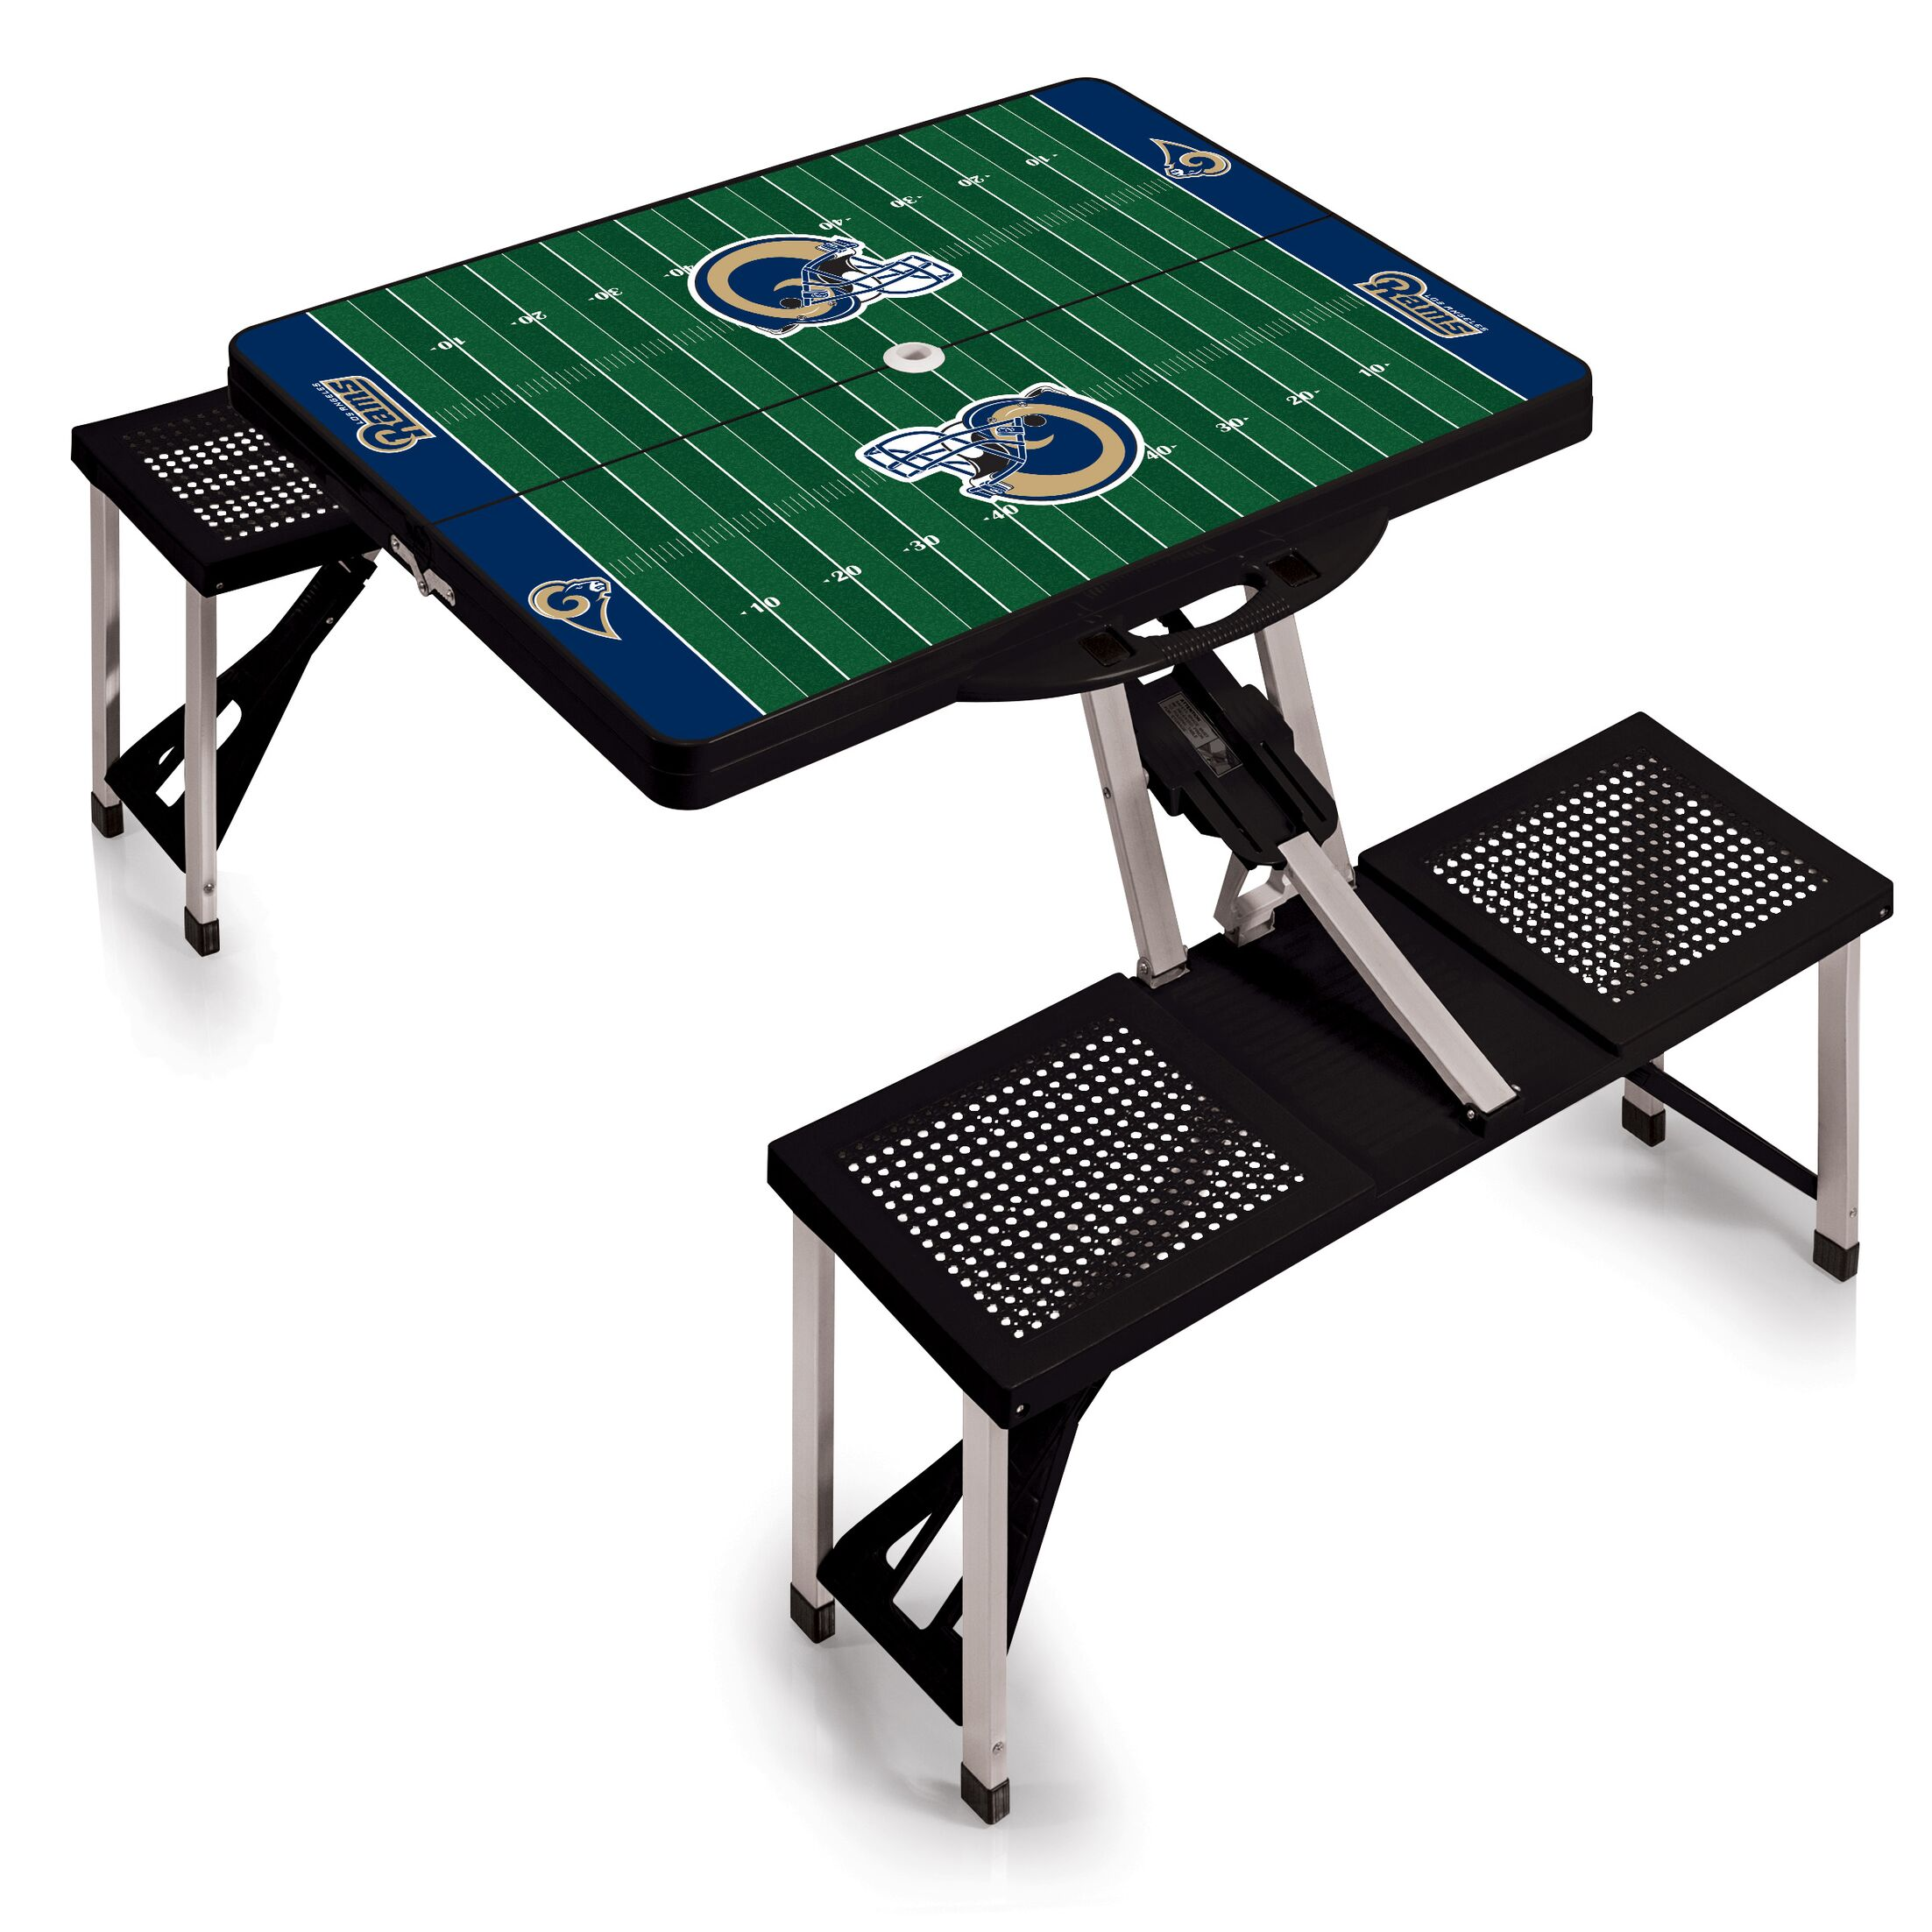 NFL Picnic Table Sport Finish: Black, NFL Team: Tampa Bay Buccaneers